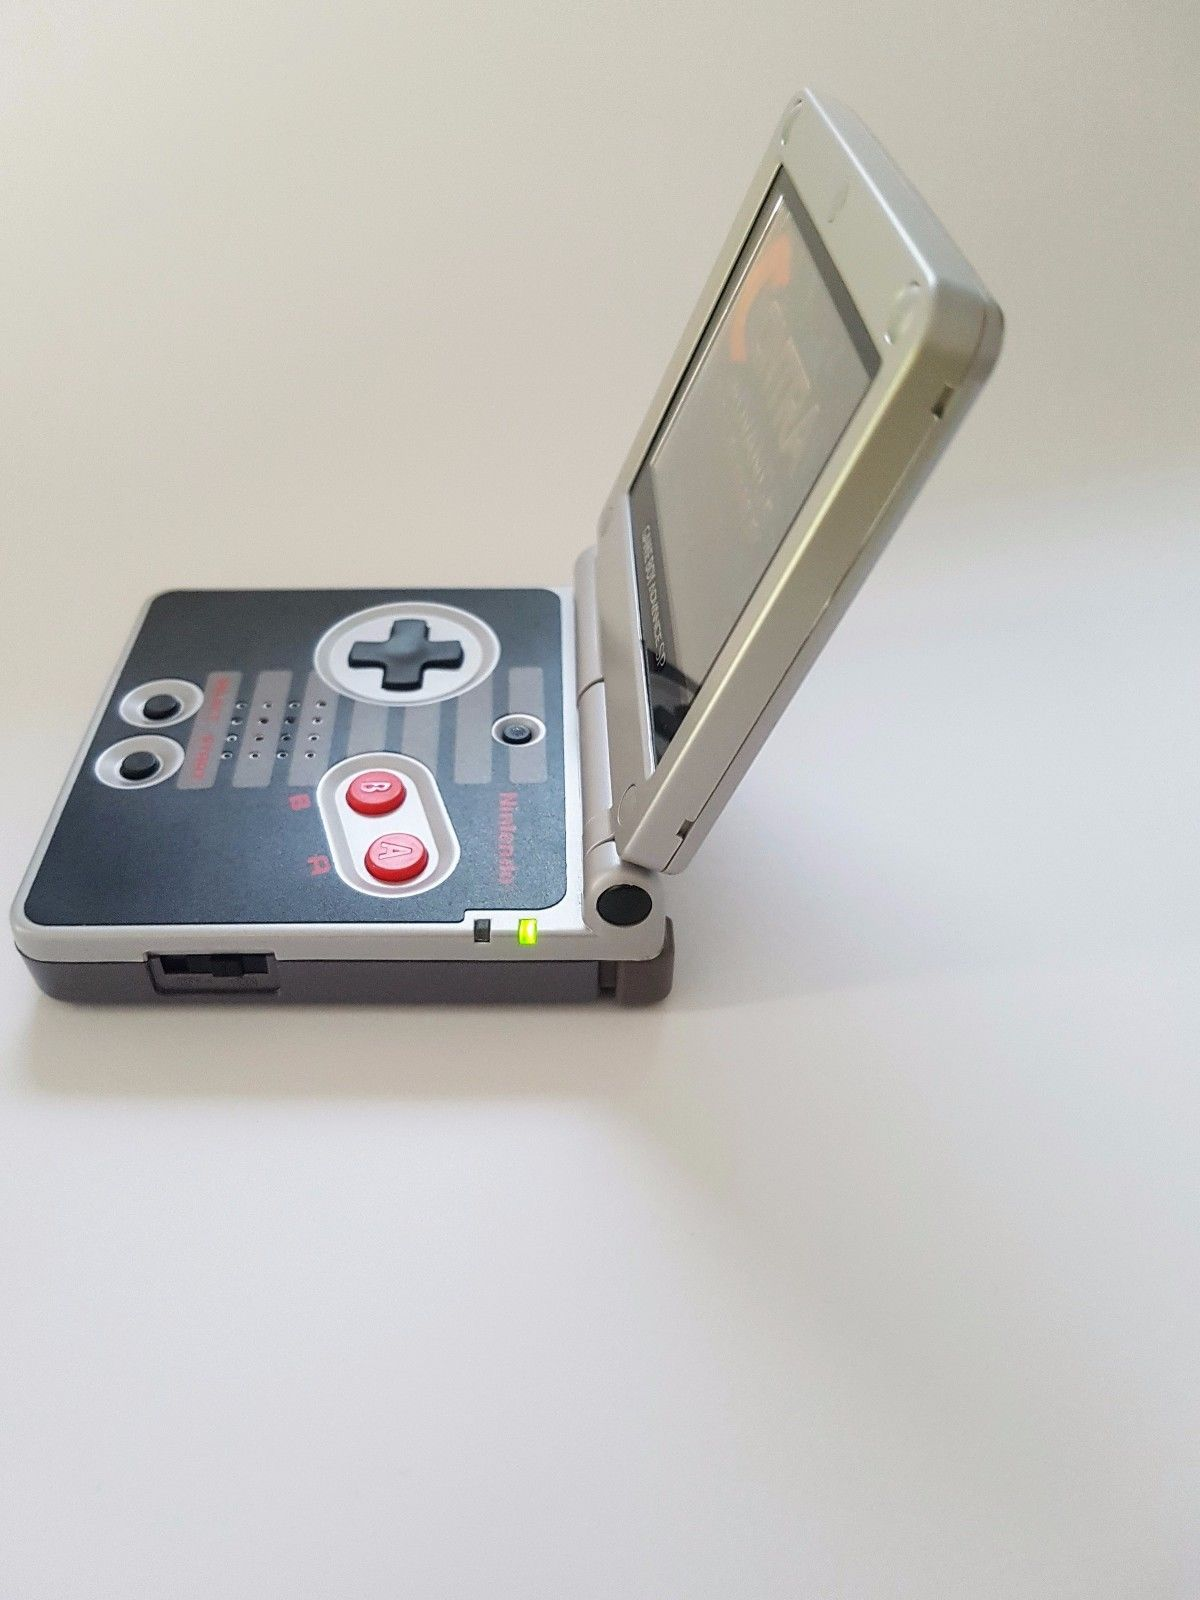 Gameboy Advance Display Beleuchtung Nes Nintendo Game Boy Advance Gba Sp Ags101 Backlight